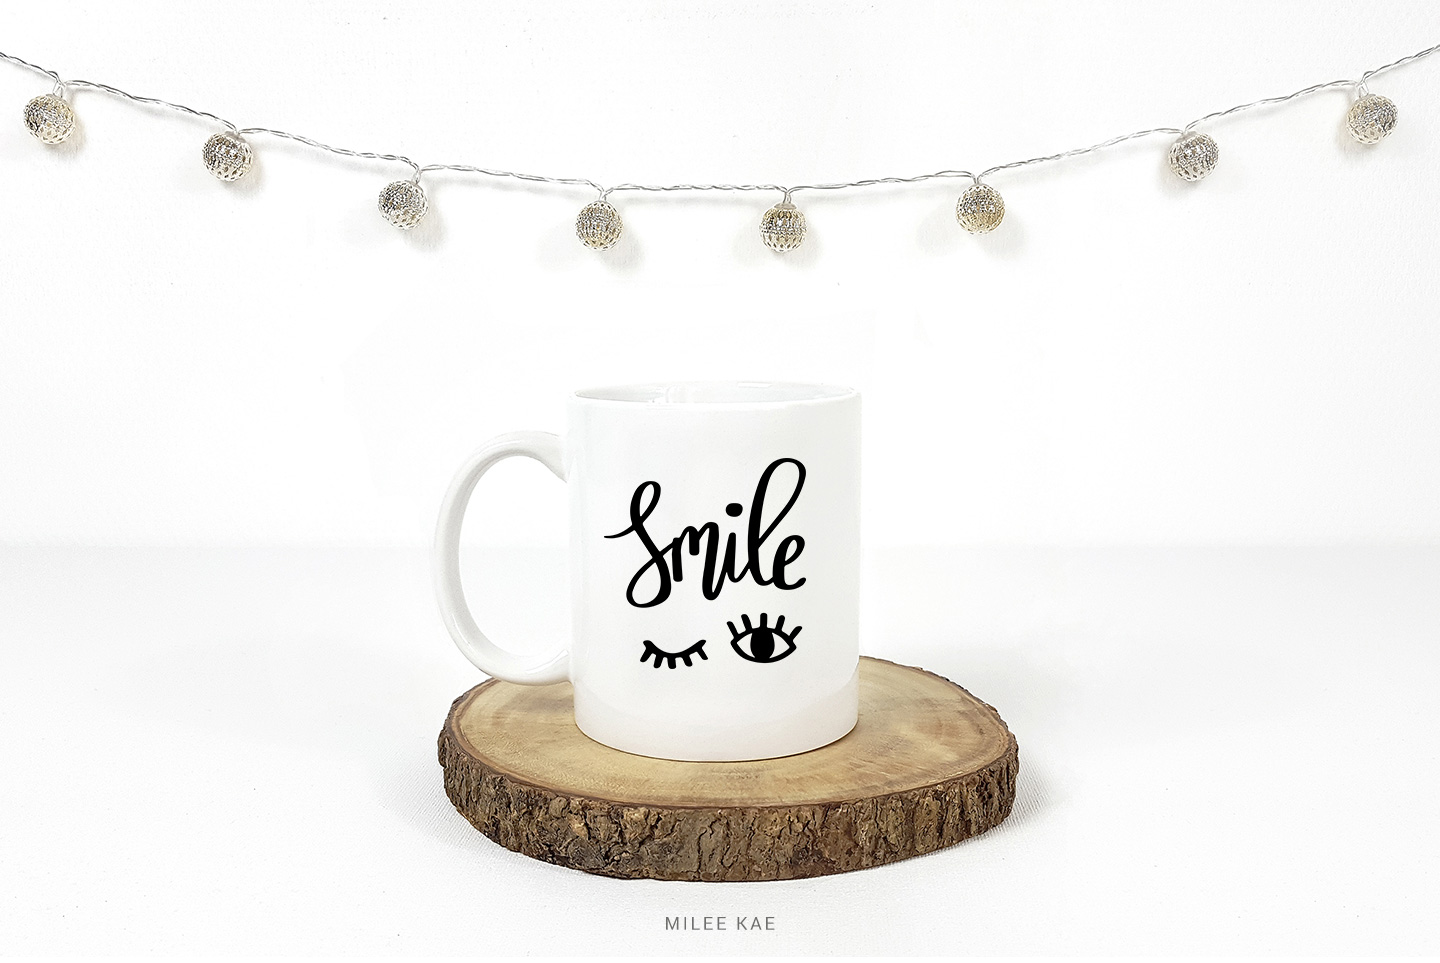 Smile, Cutting file, SVG, PNG, EPS, DXF example image 3